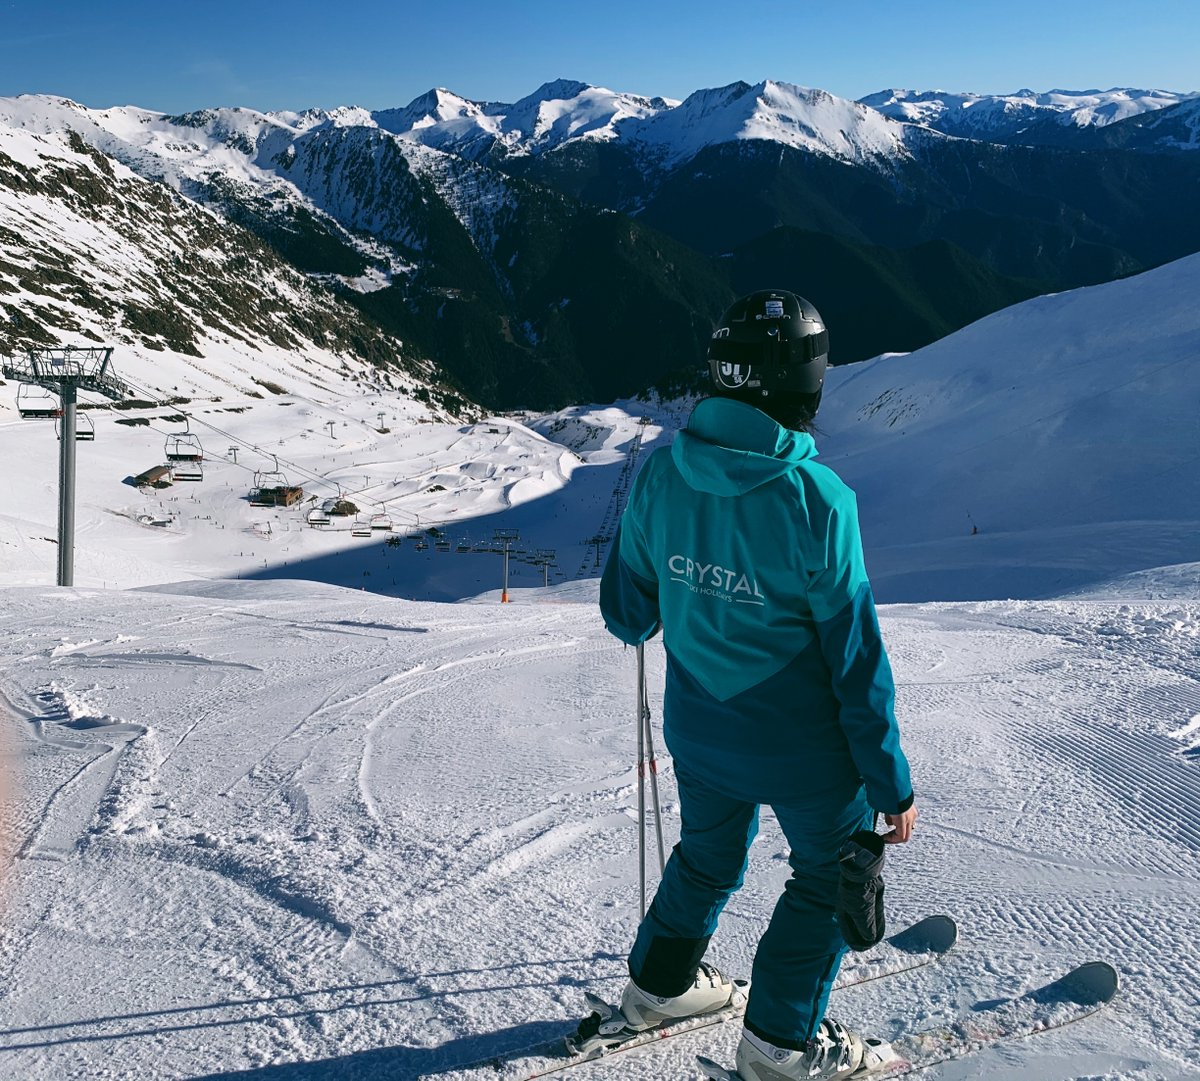 Who else wants this to be their current situation? #ad _ 📍 Arinsal, Andorra https://t.co/n597V94oBJ